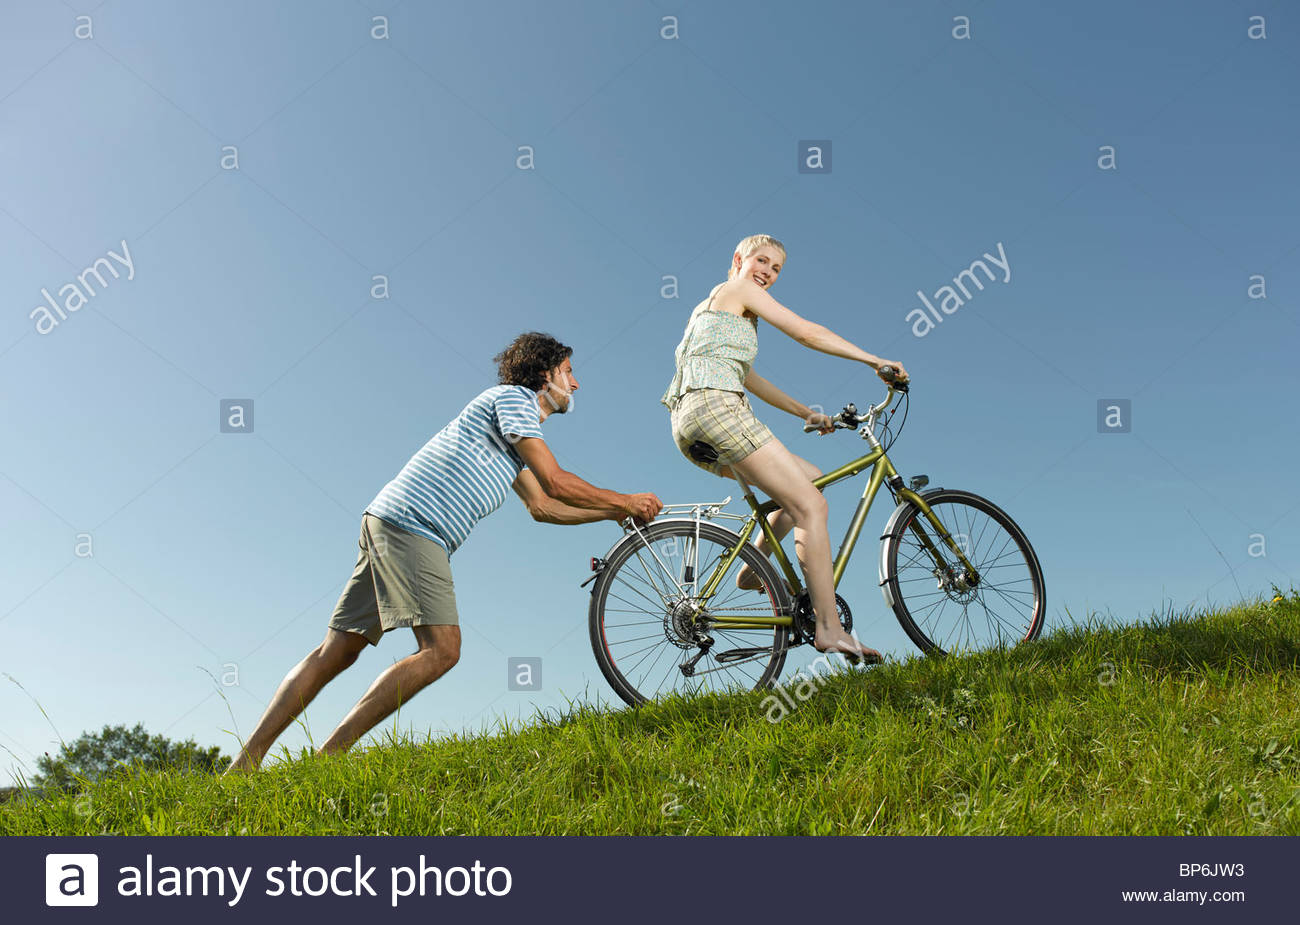 A woman on a bicycle, man pushing her uphill - Stock Image